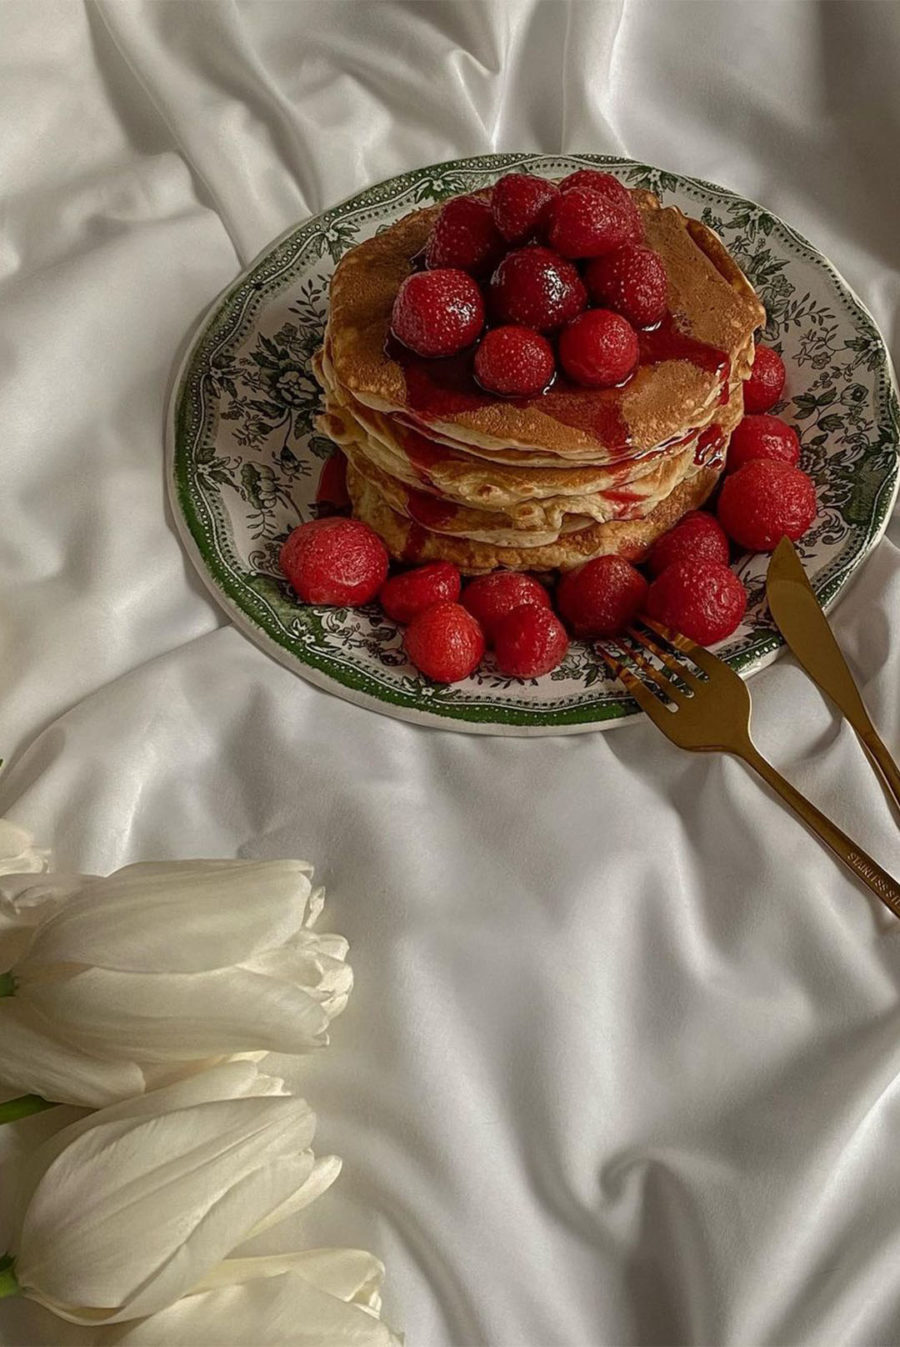 Pancakes with flowers, raspberries on bed